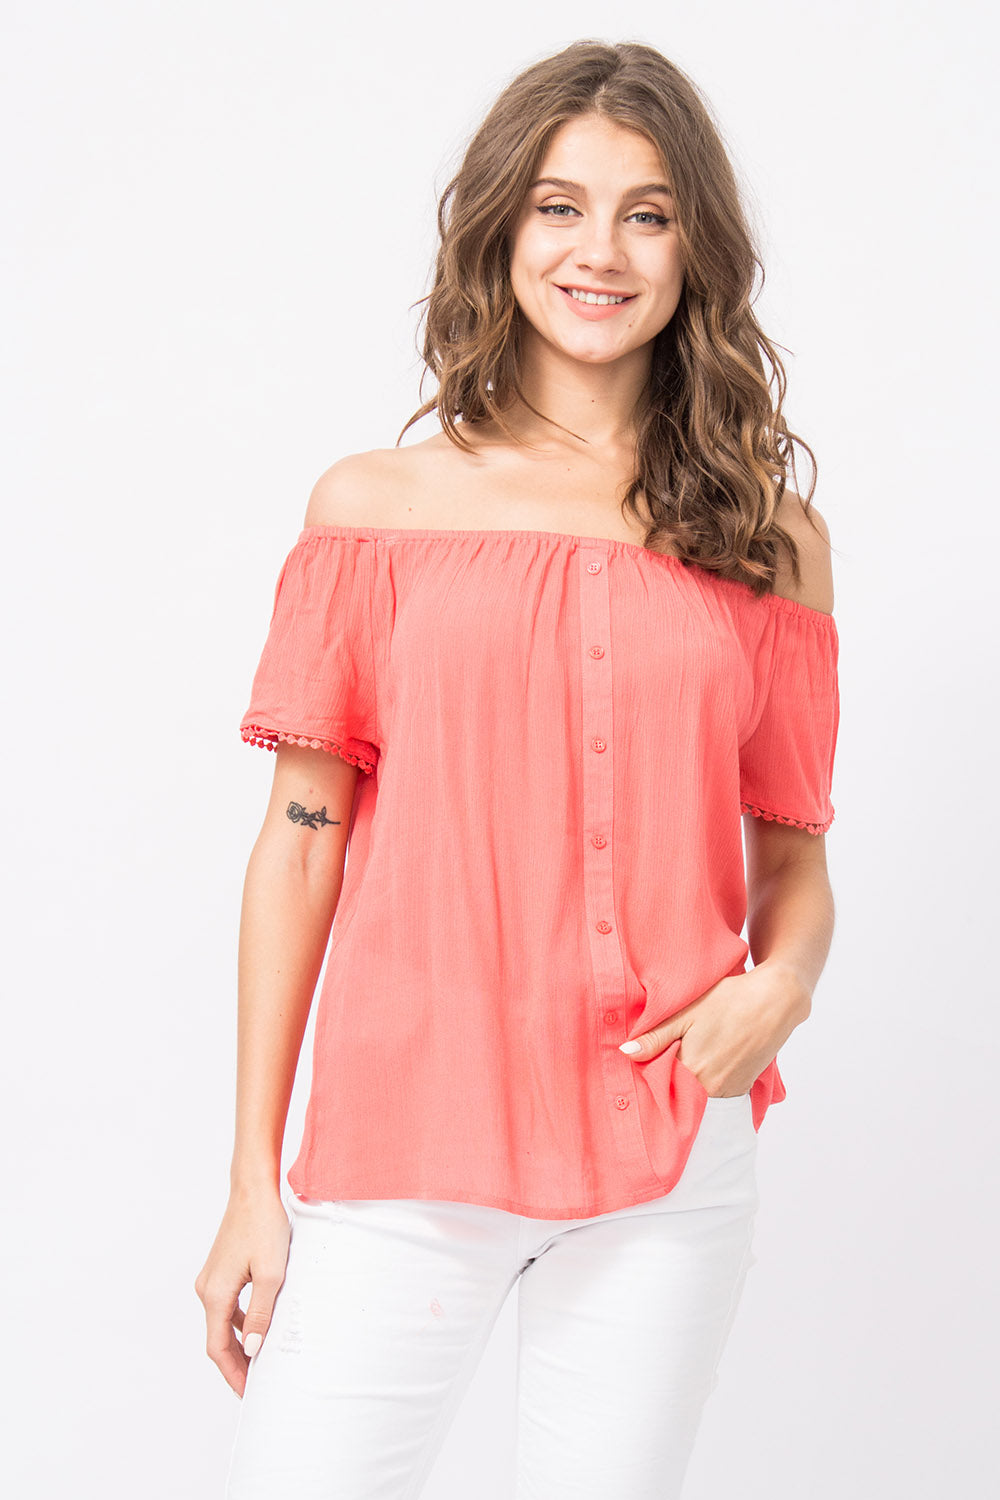 Off-Shoulder Bluse Paola